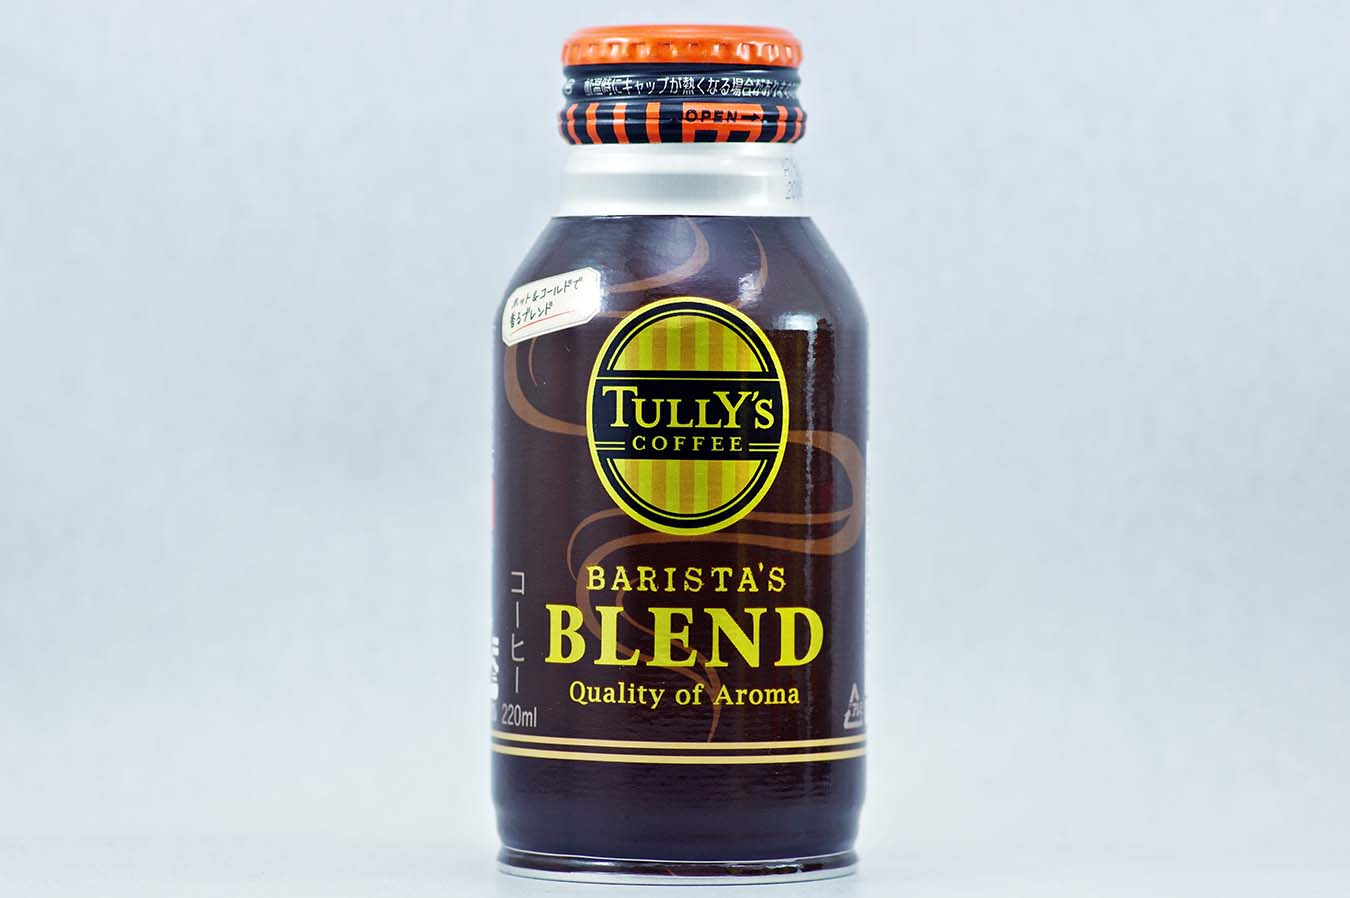 TULLY'S COFFEE BARISTA'S BLEND 2015年9月